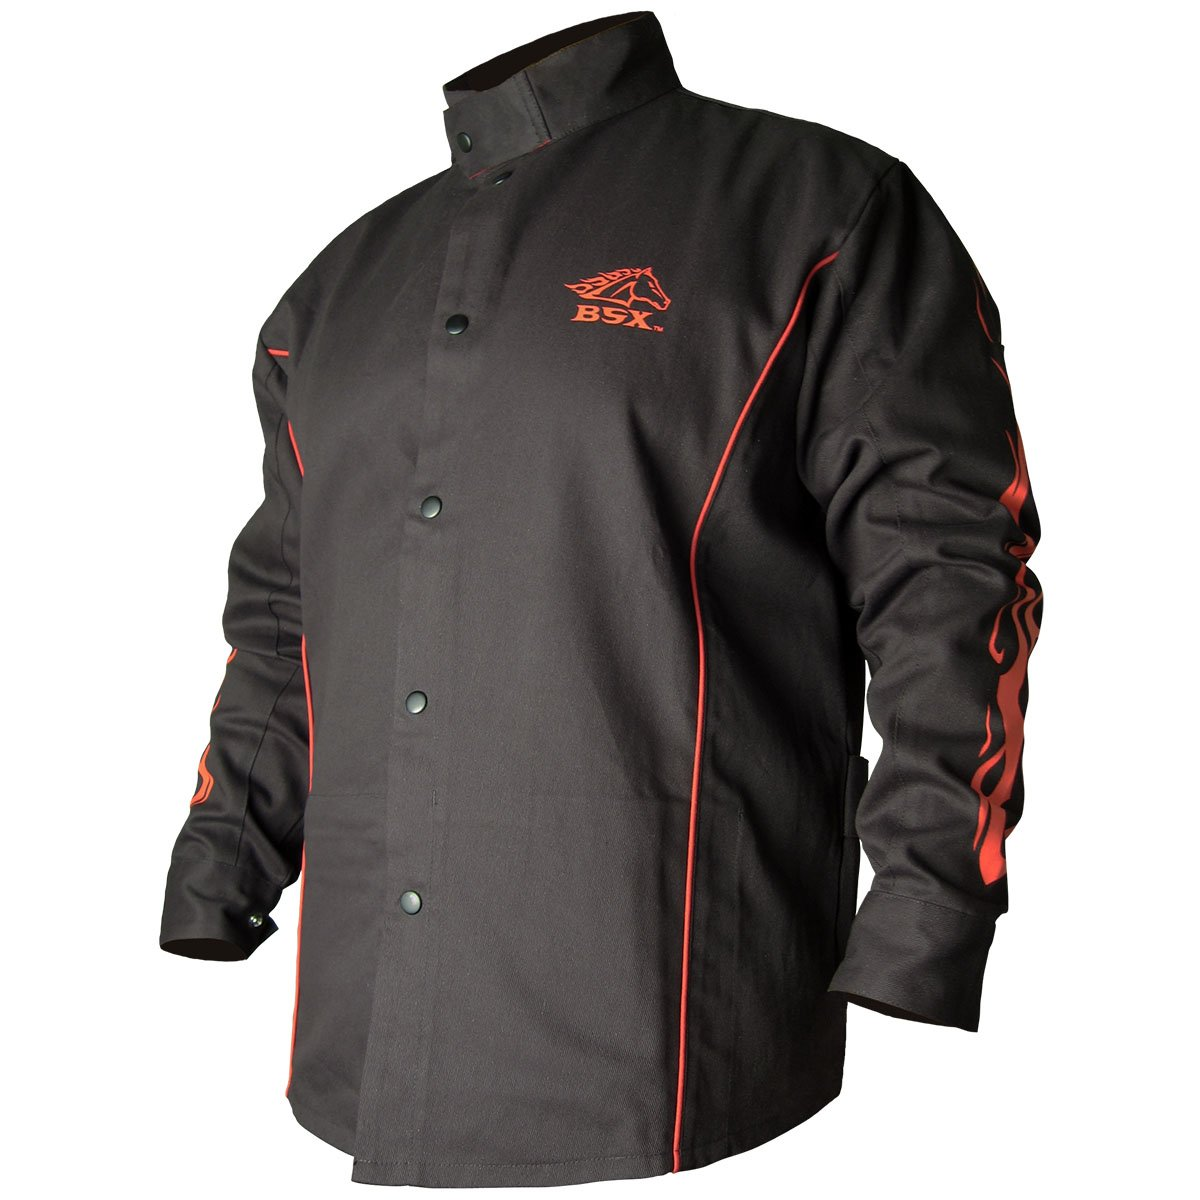 Revco BSX Welding Jacket by Revco